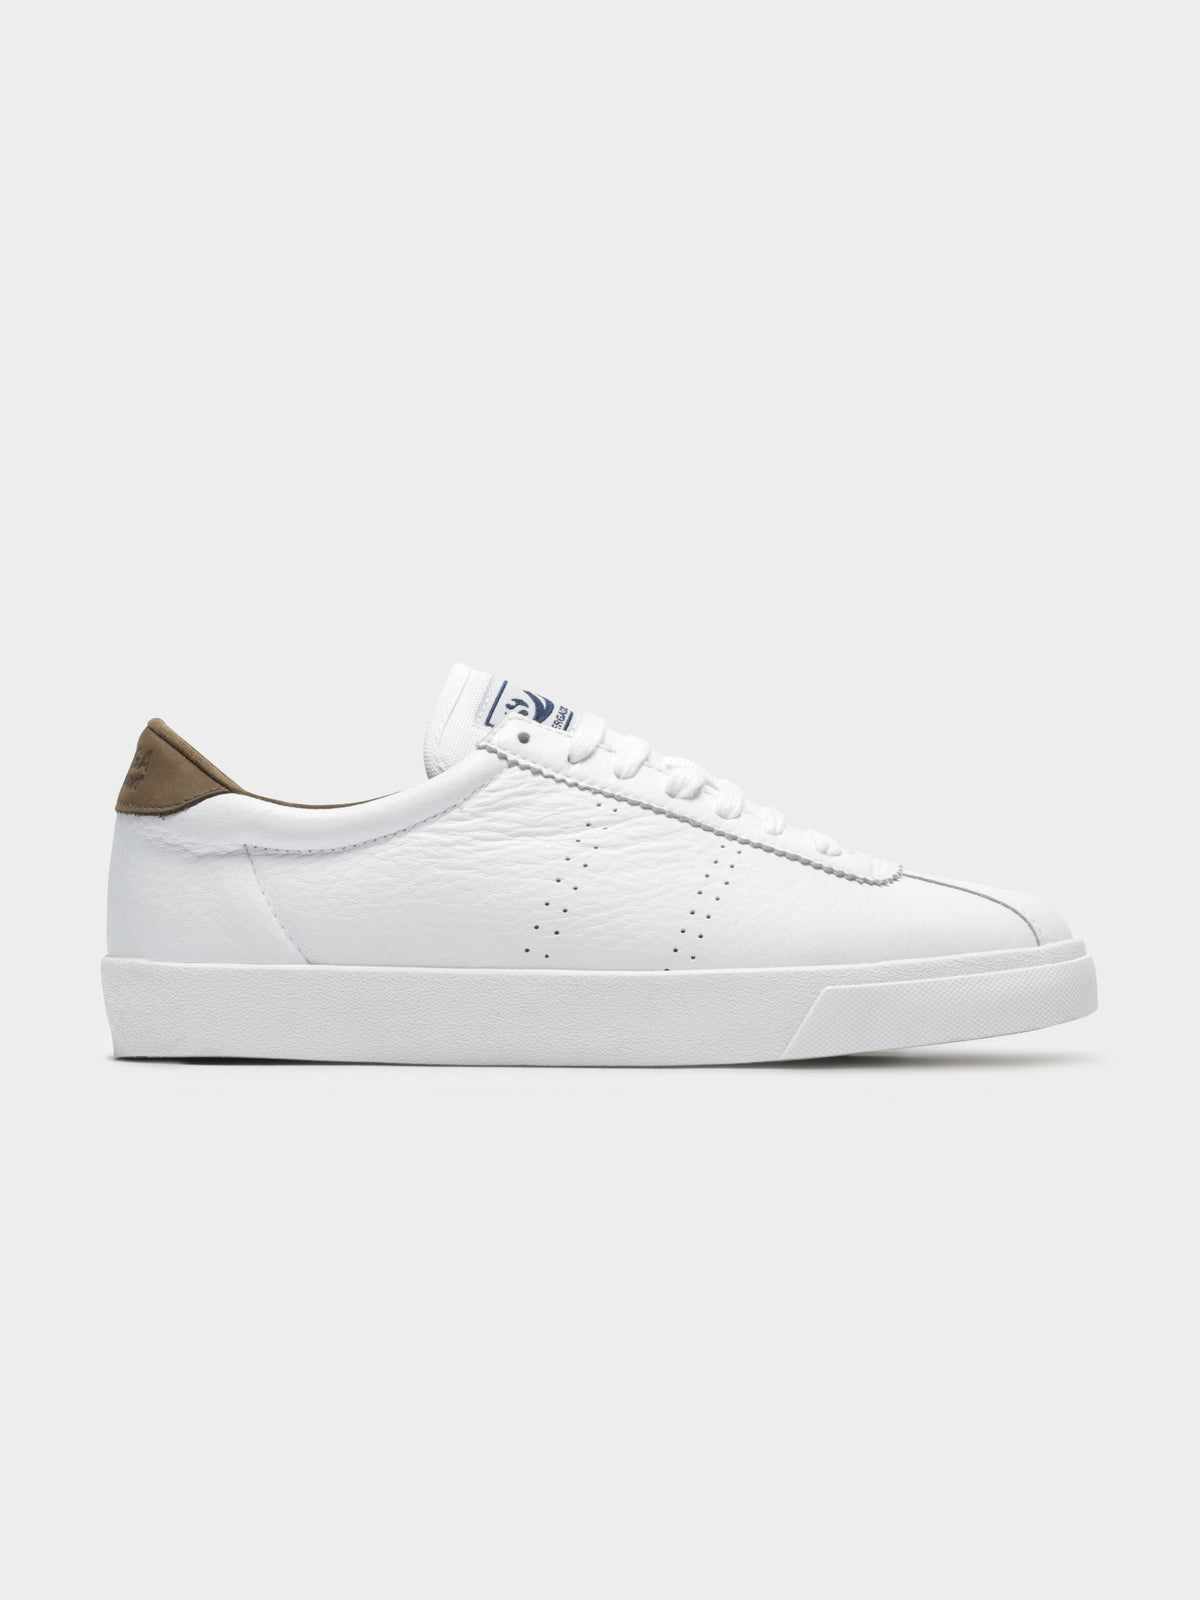 2843 Clubs Comfleau Sneakers in White & Khaki